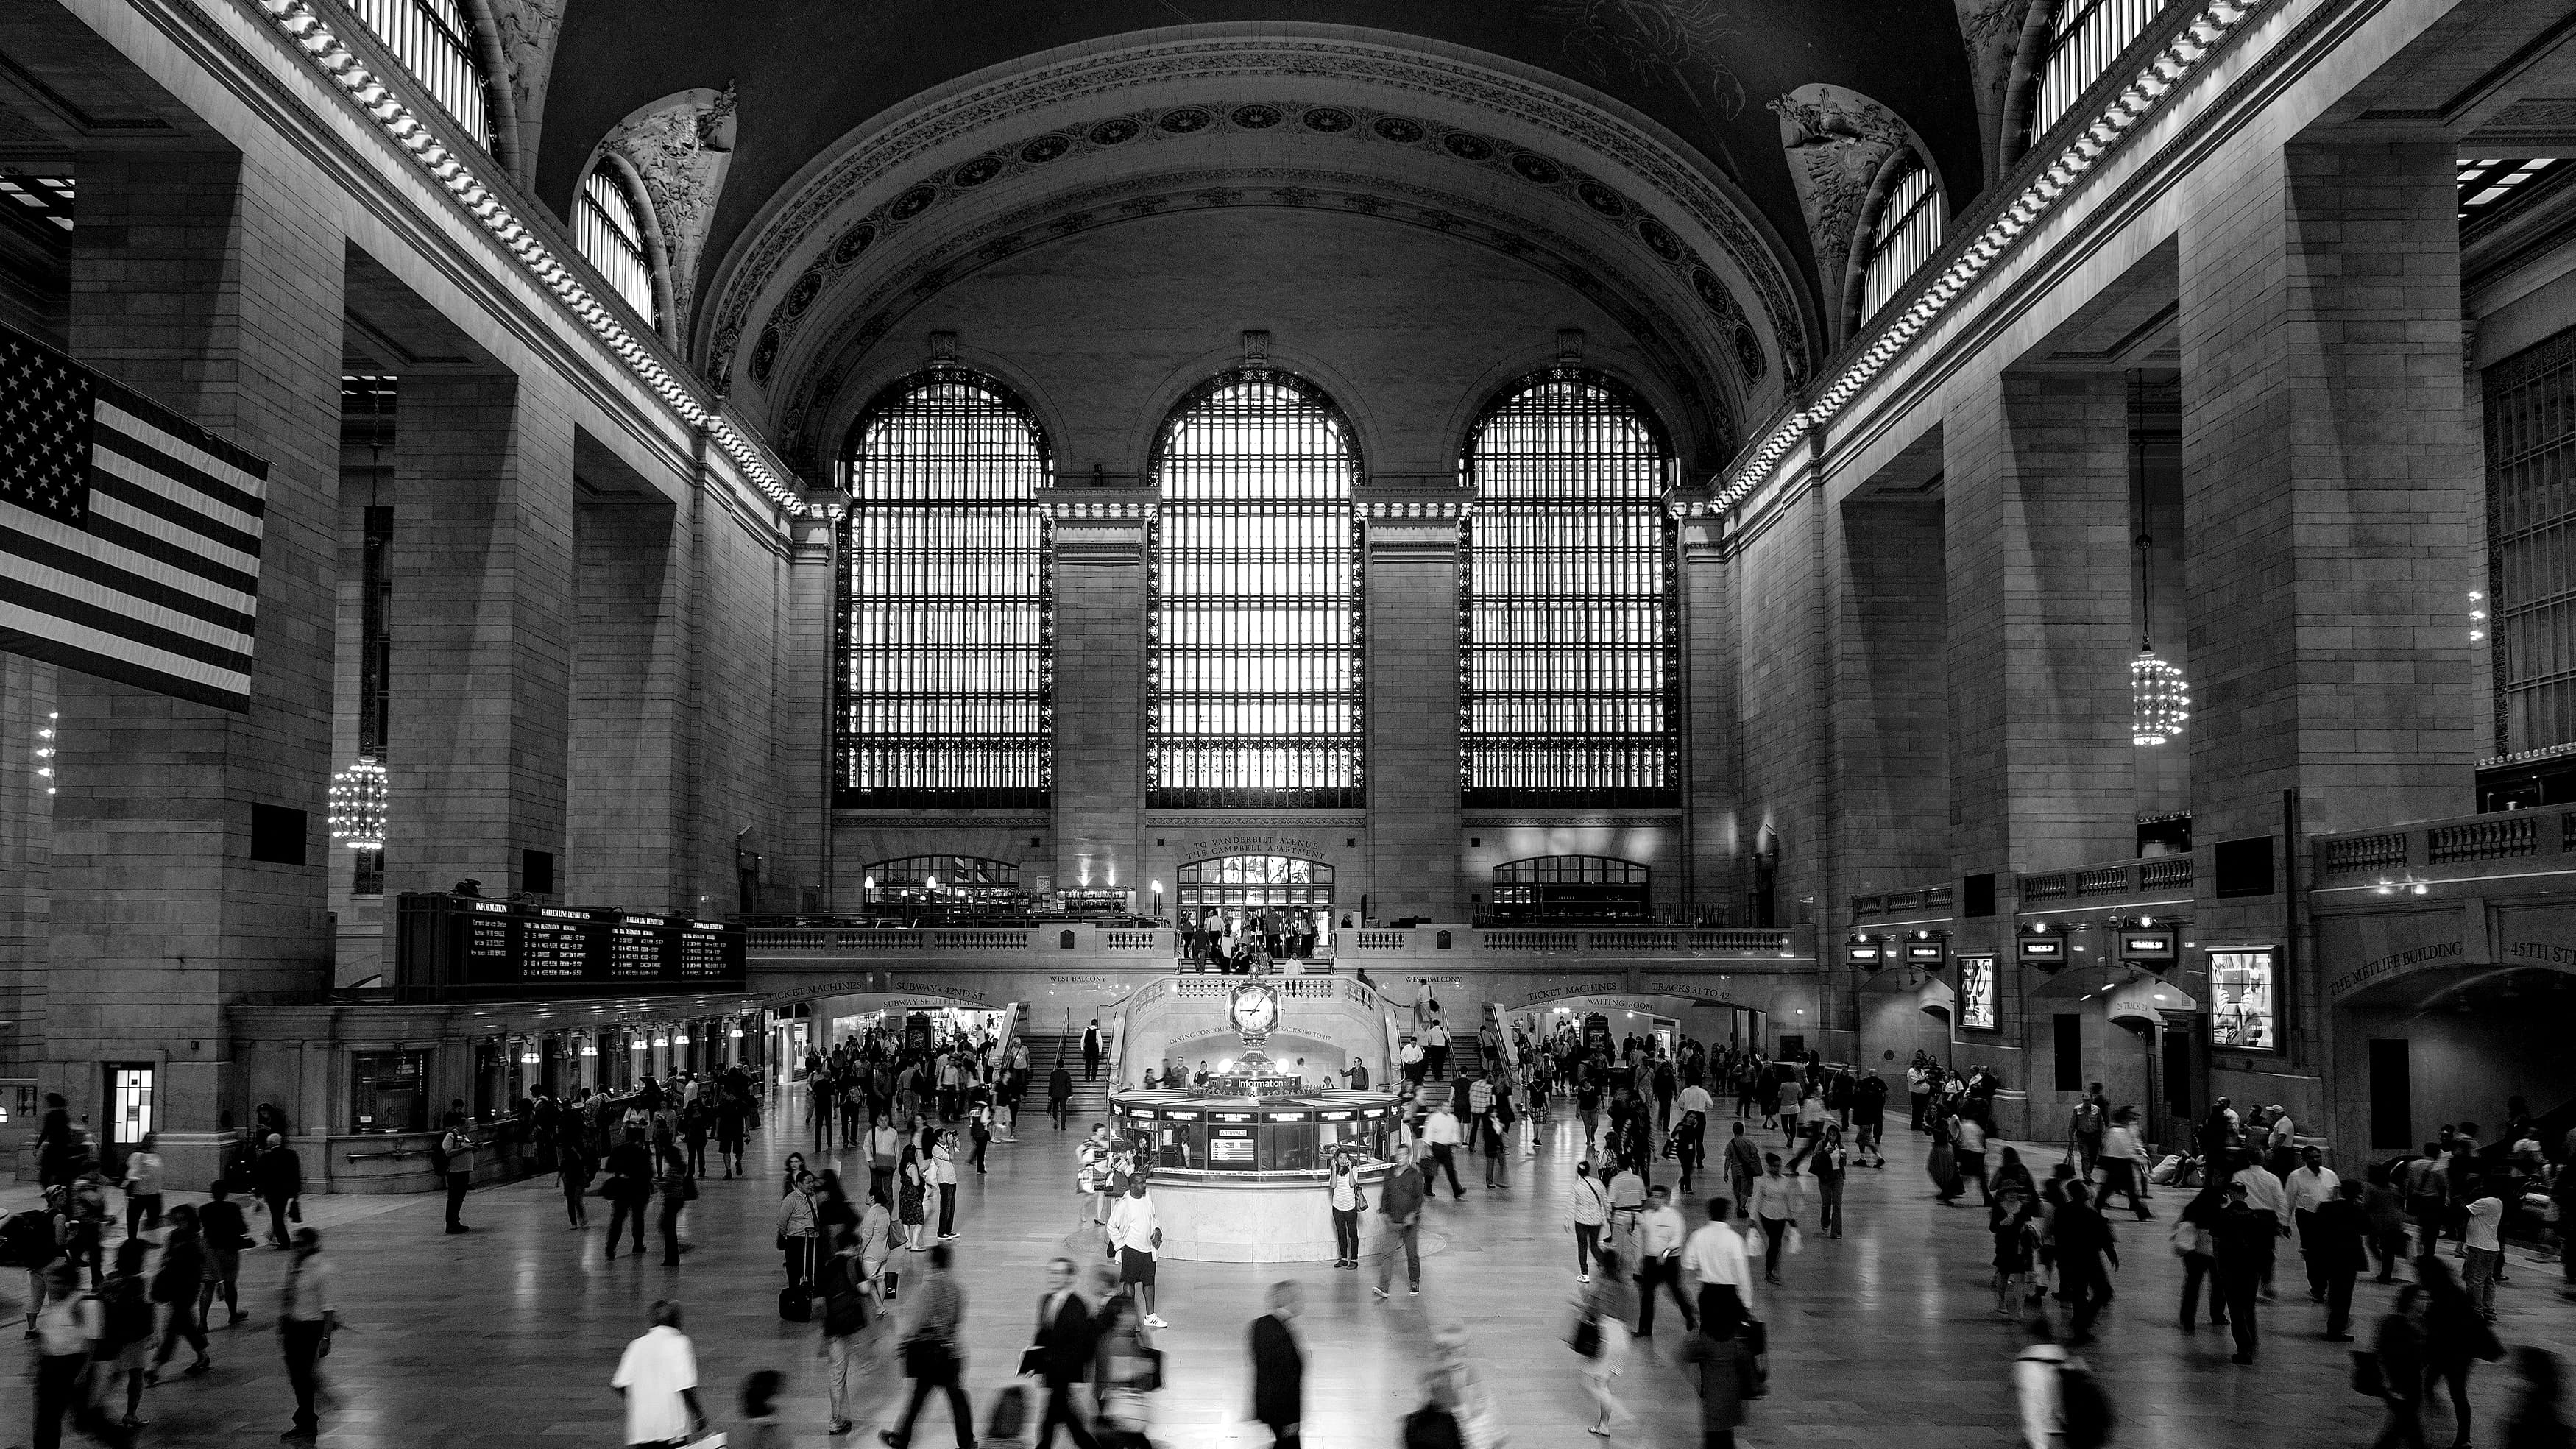 Black and white image of people walking through Grand Central Terminal in New York City